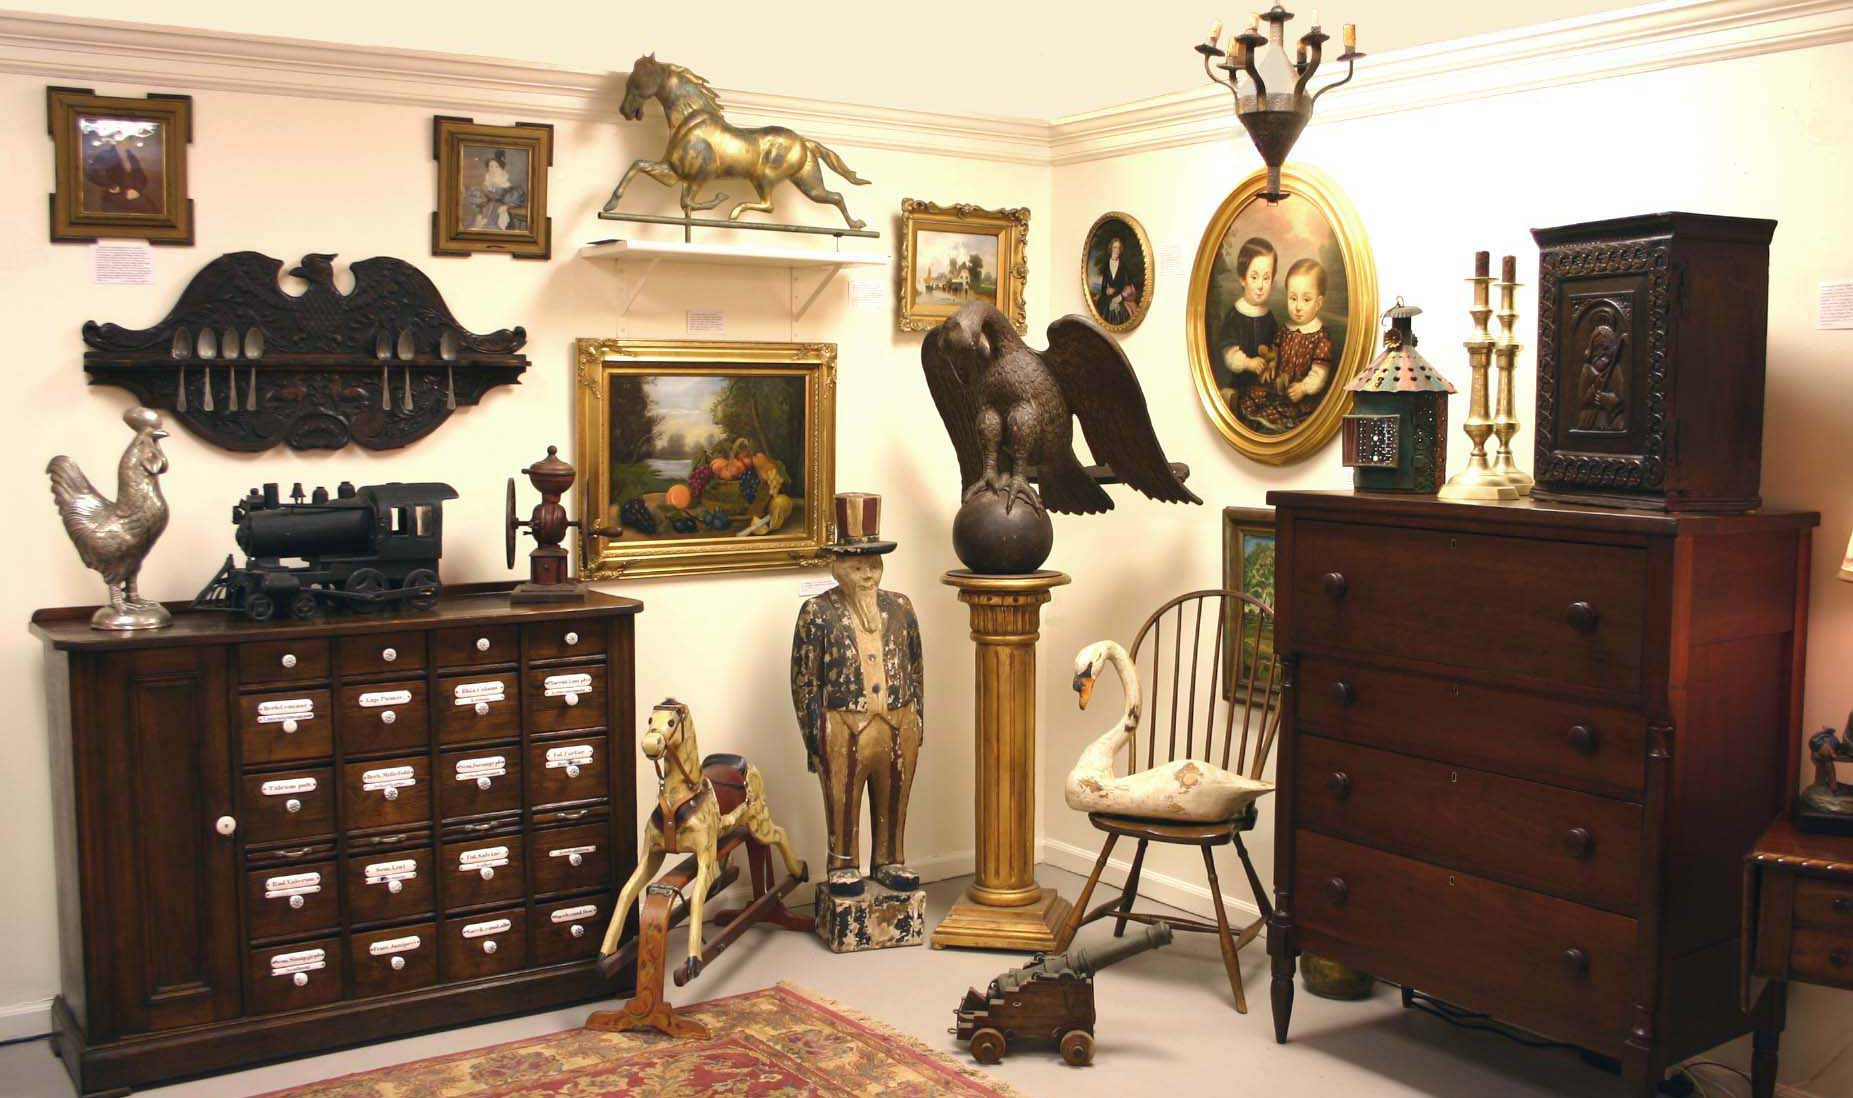 Best antique shops in south africa antique king for Chinese furniture for sale cape town